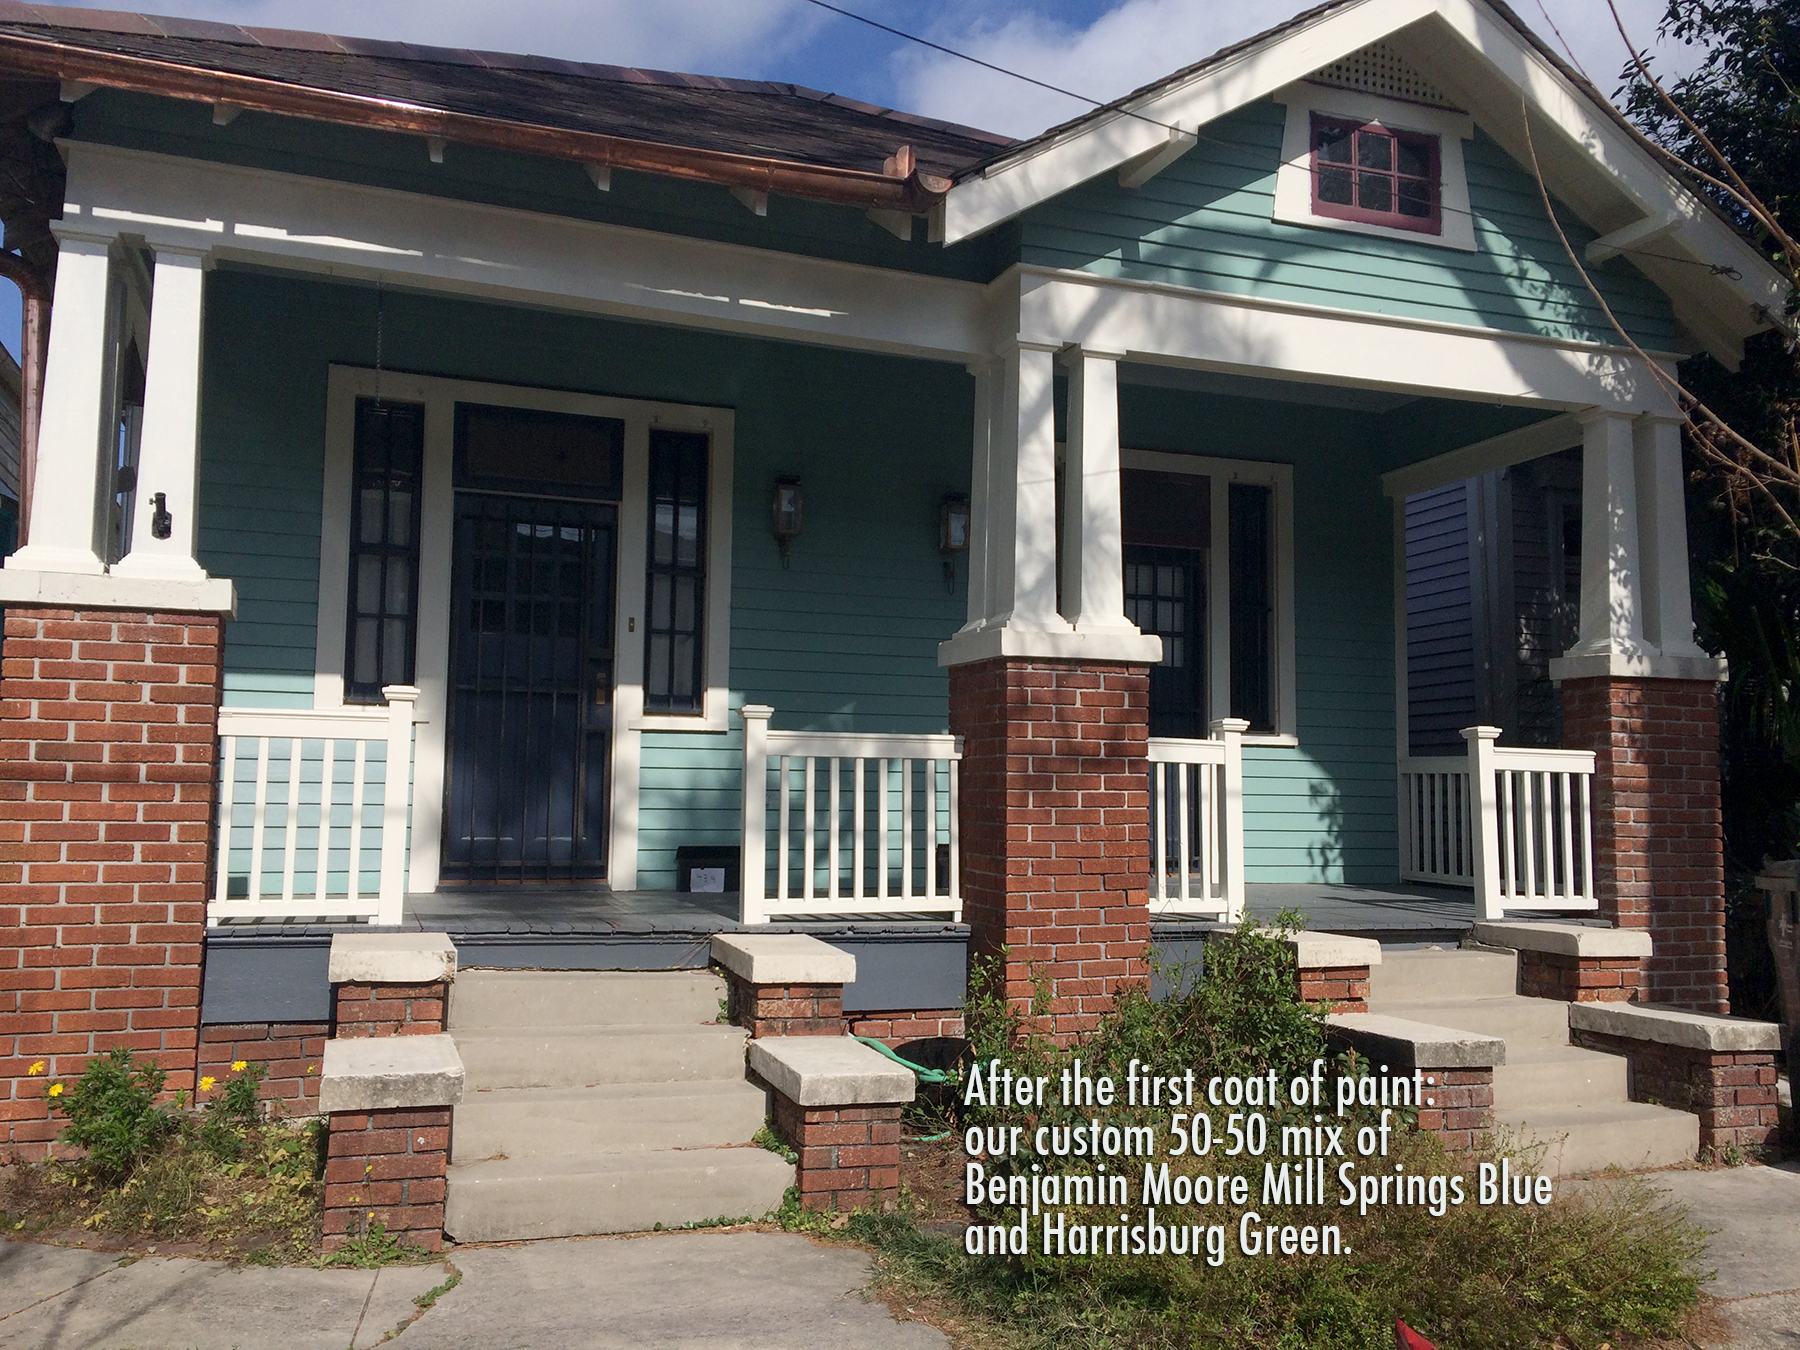 The Reveal Exterior Paint Job Nola Kim